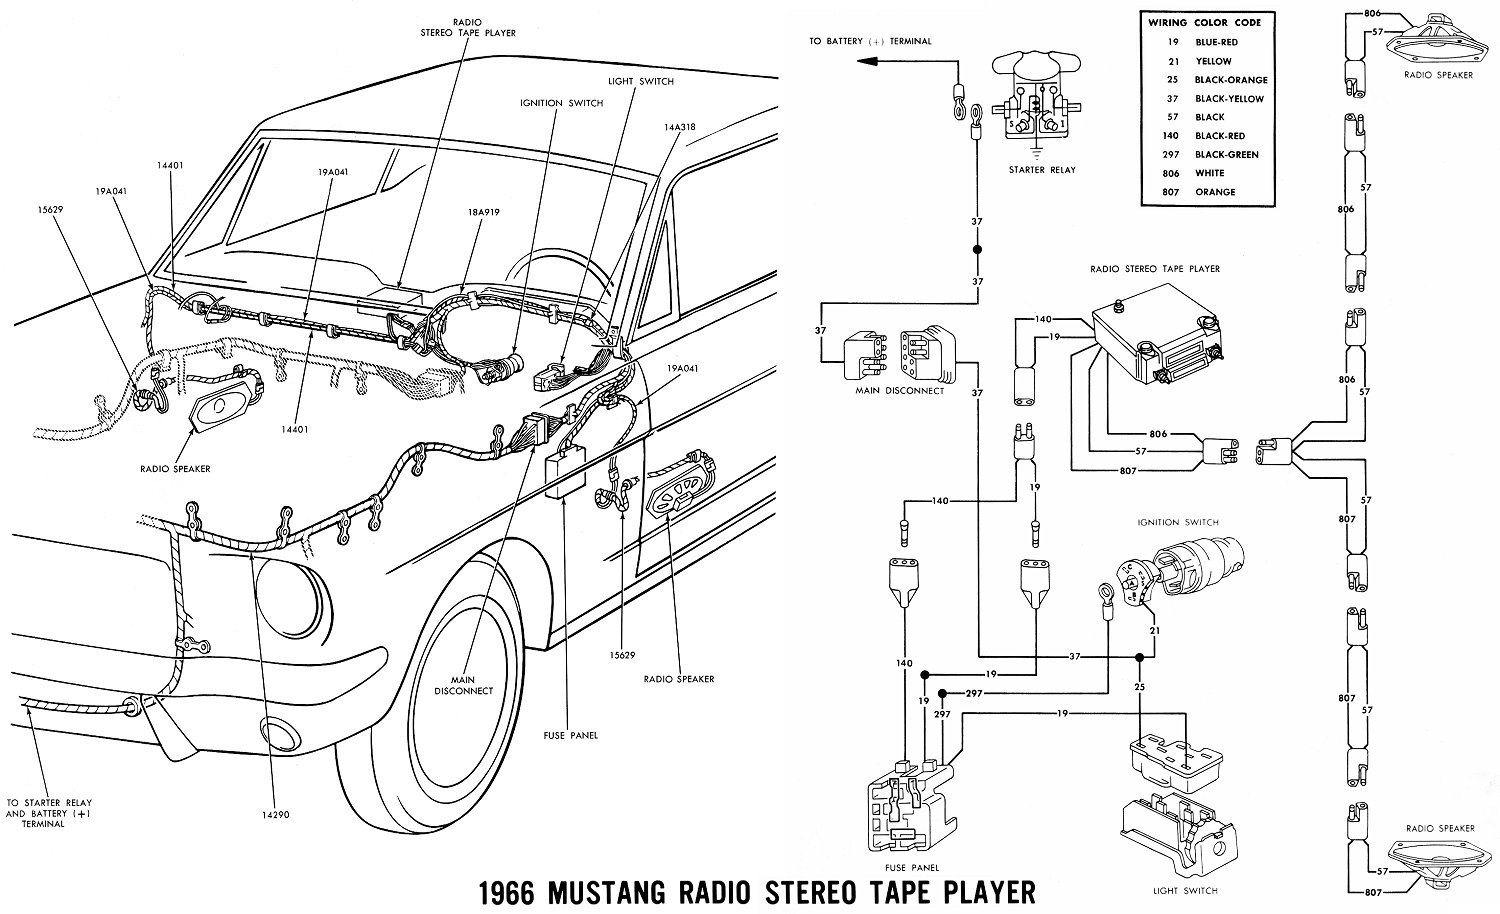 C3 C4 Corvette Vacuum Diagrams also Starter Wiring Diagram Ford furthermore 1966 Mustang Wiring Diagrams besides HA1y 14891 further Schematics i. on 1972 corvette wiring diagram